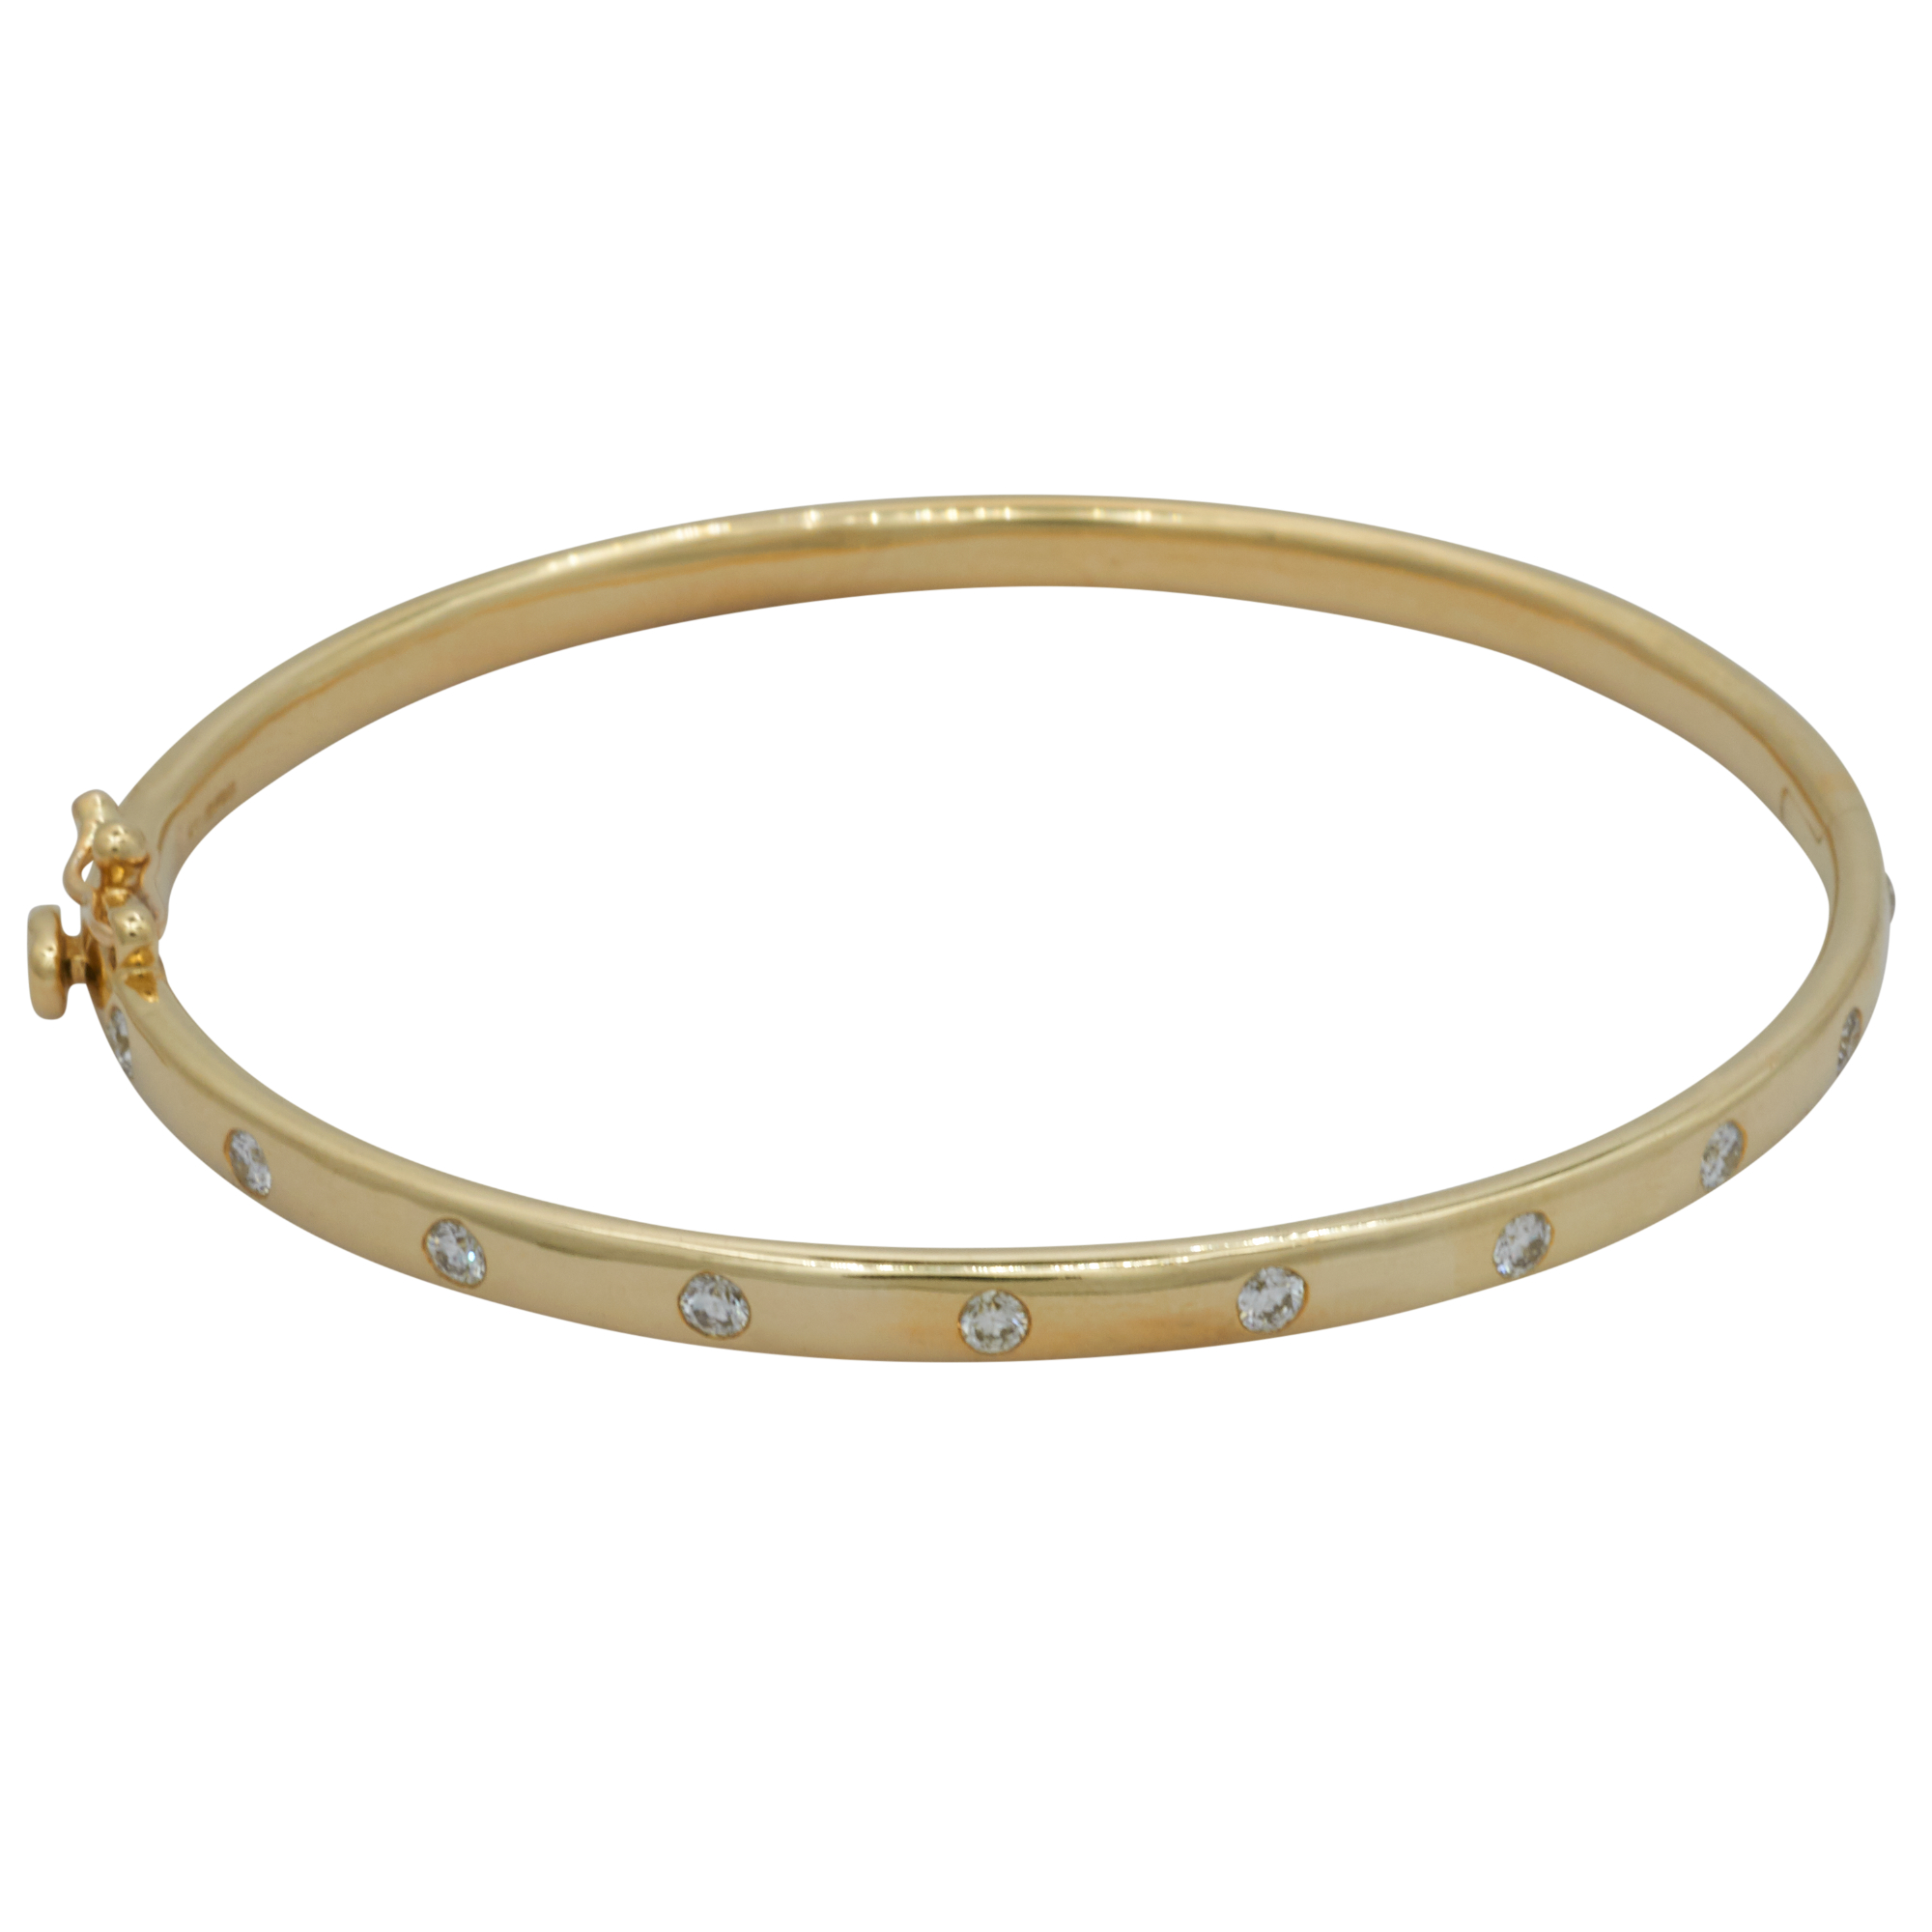 9Ct Yellow Gold Oval Hinge Bangle with Diamonds